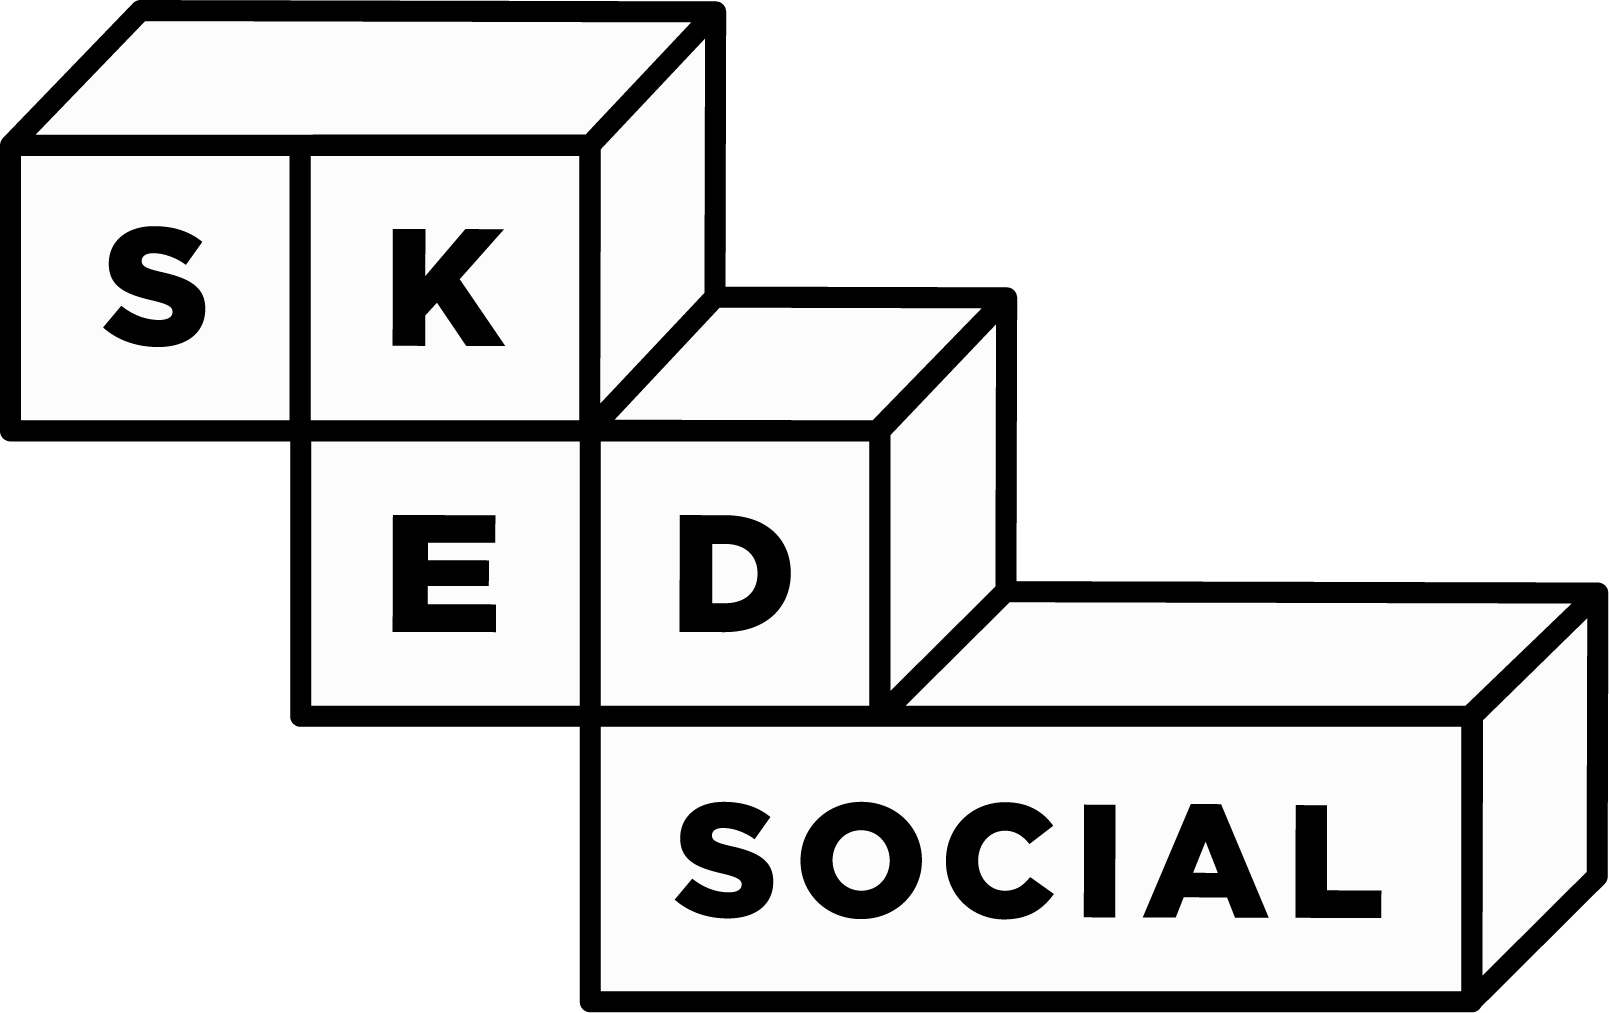 Sekd Social alternatives and reviews